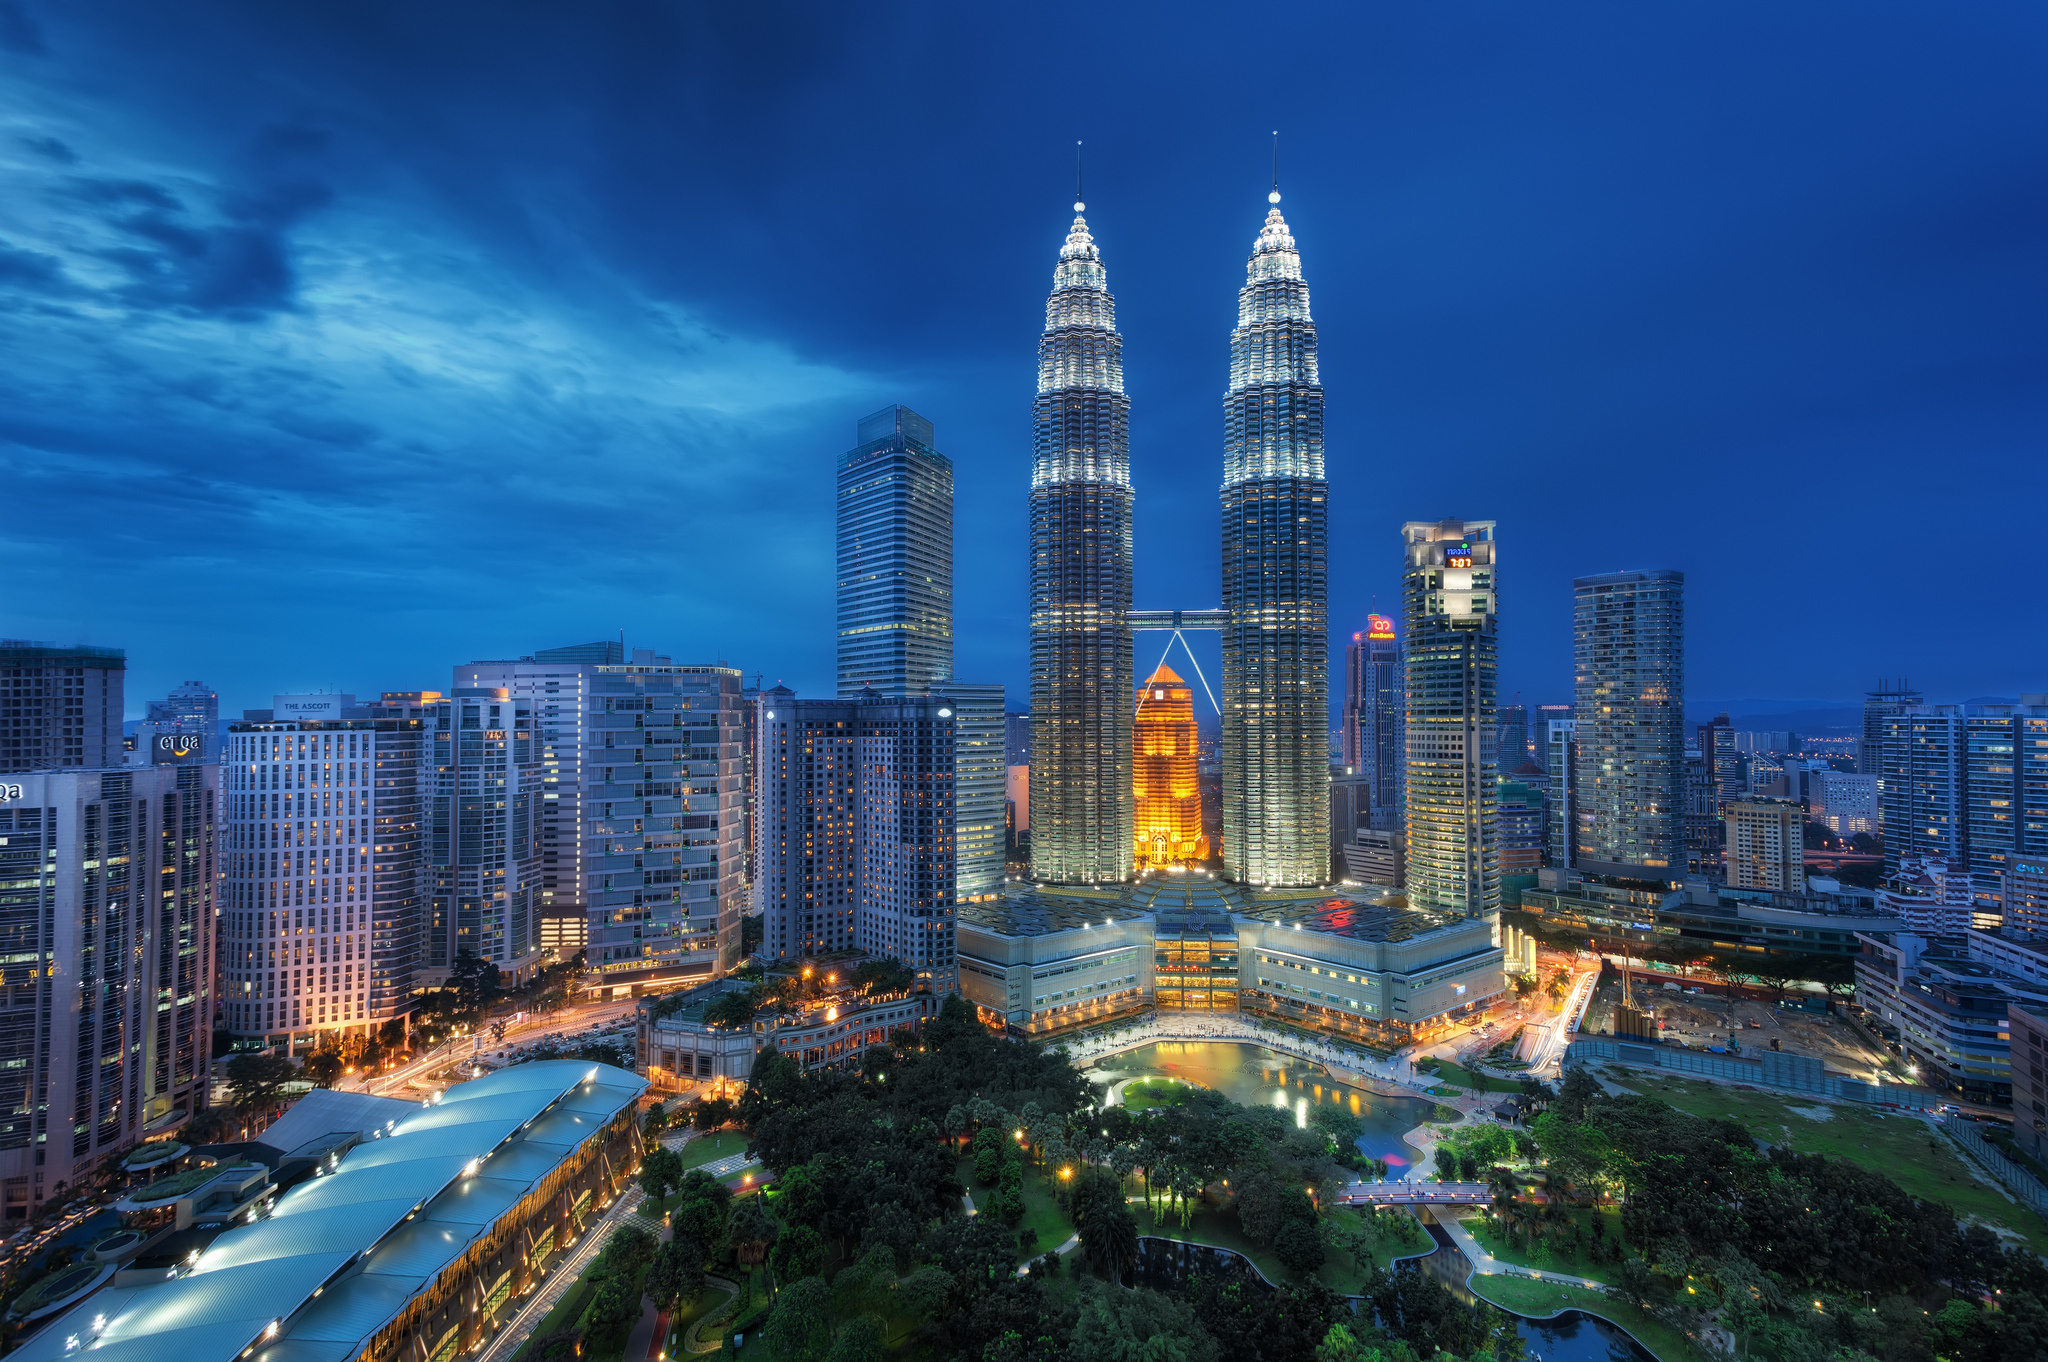 kl fastest growing city